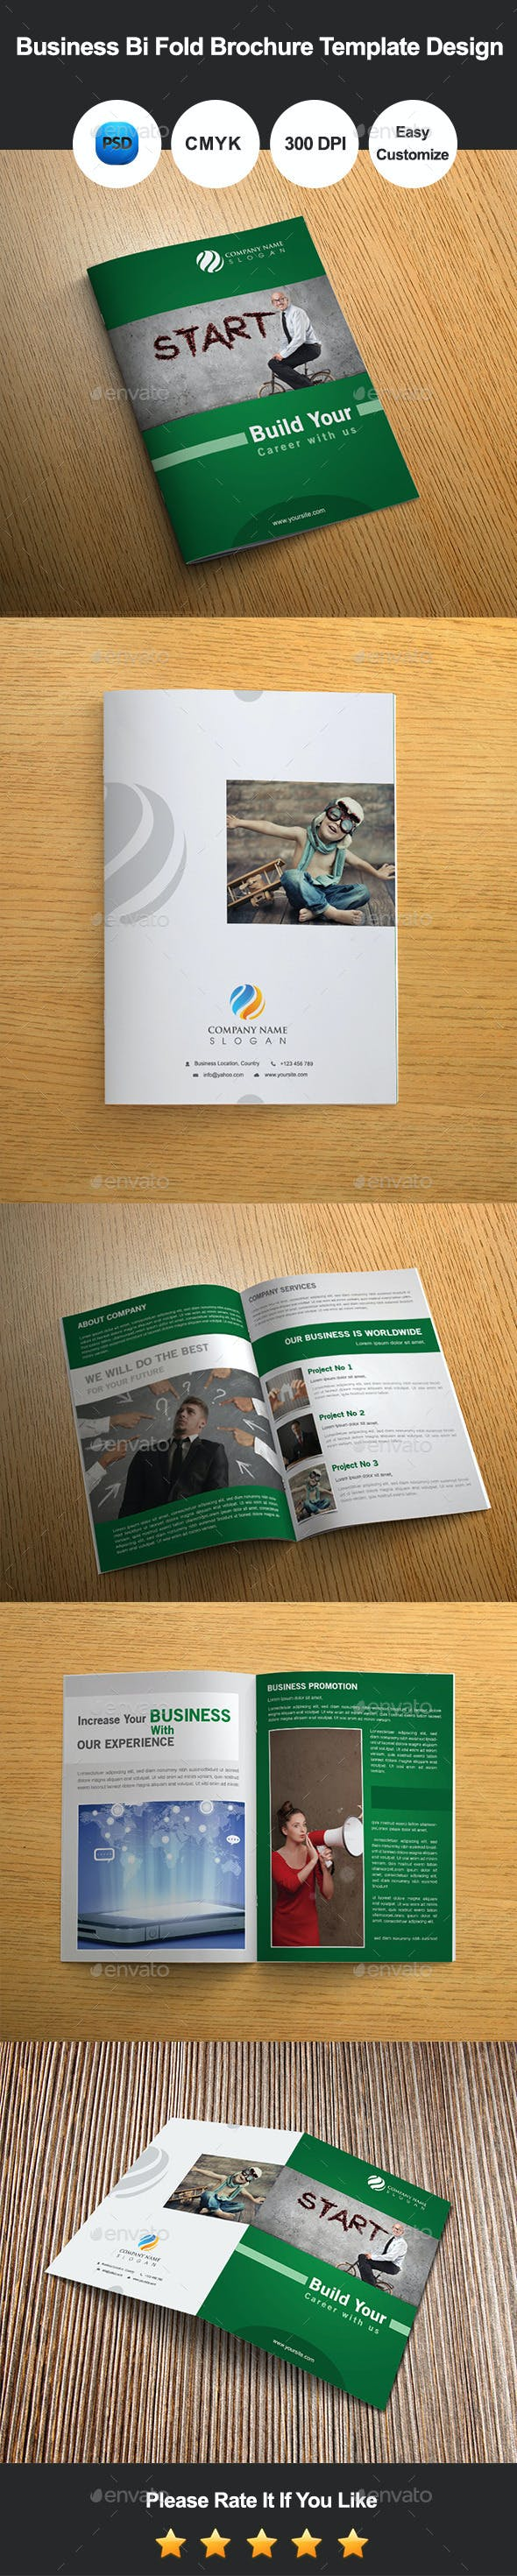 6 pages business bi fold brochure template design by graphicsdesignator